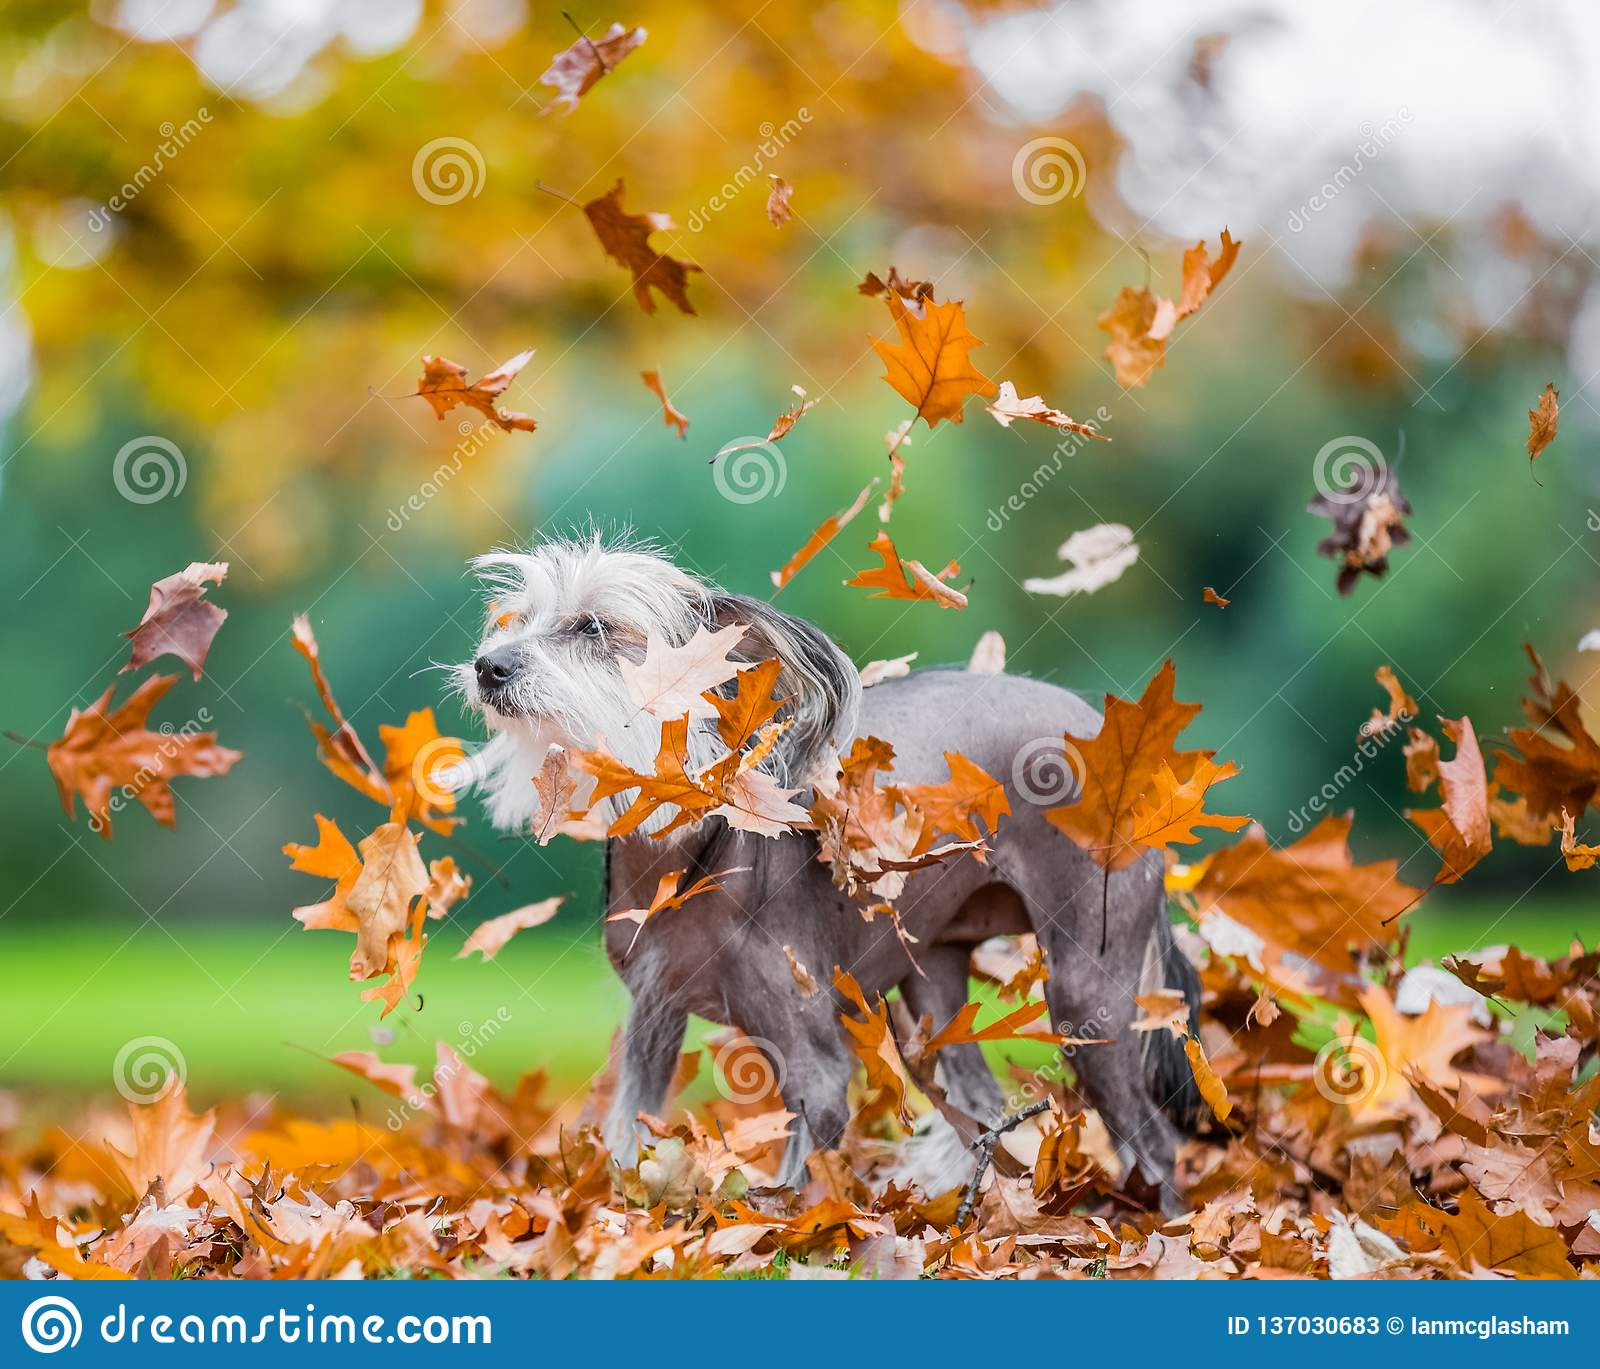 Chinese Crested Dog in falling autumn fall leaves